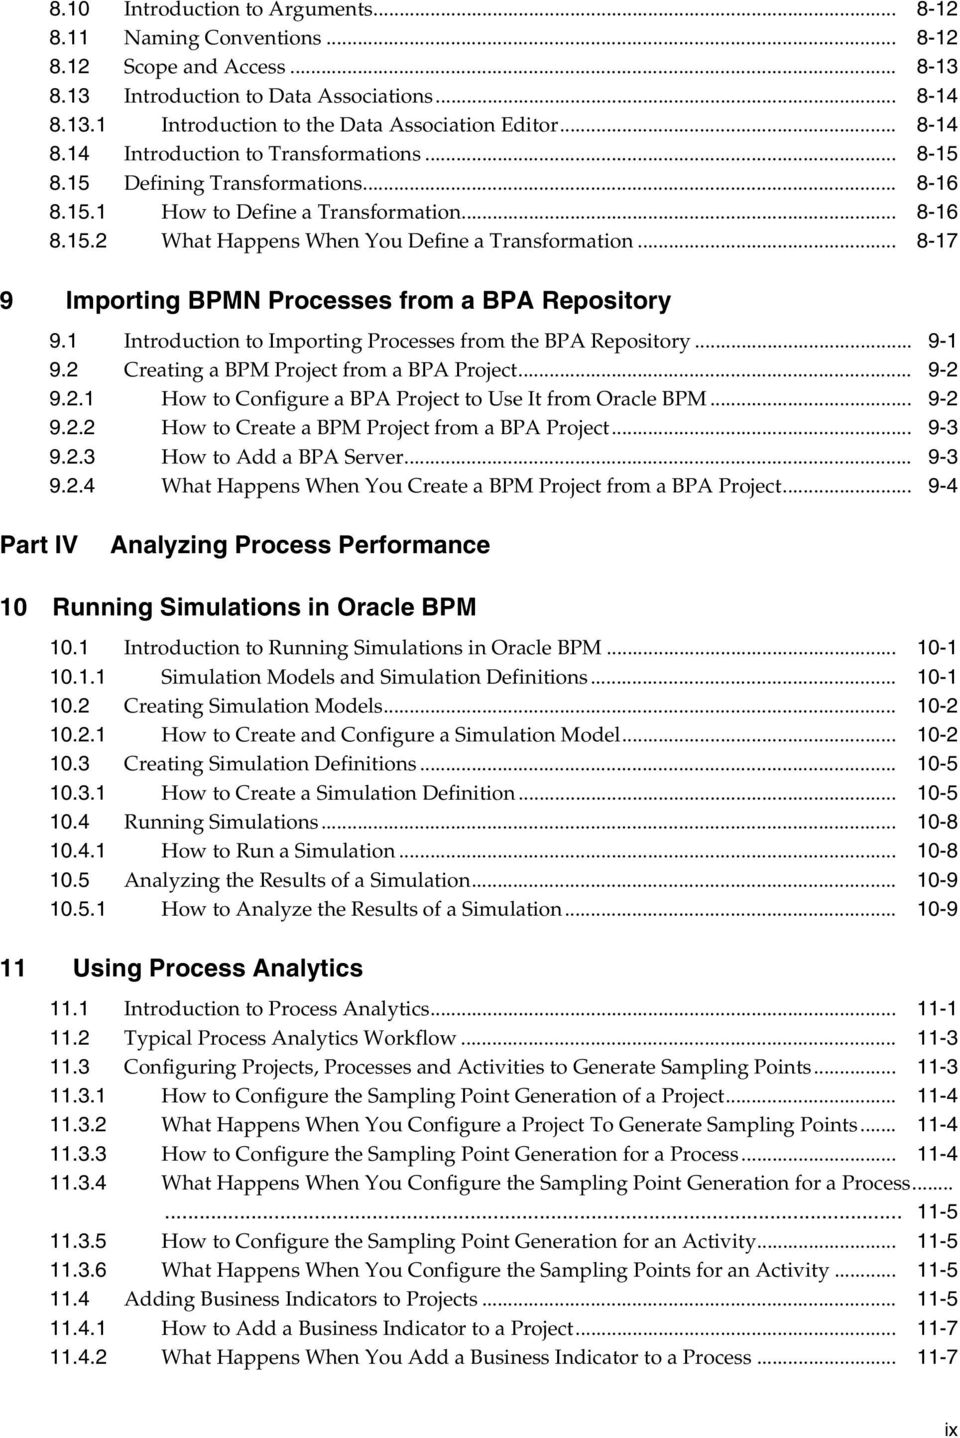 .. 8-17 9 Importing BPMN Processes from a BPA Repository 9.1 Introduction to Importing Processes from the BPA Repository... 9-1 9.2 Creating a BPM Project from a BPA Project... 9-2 9.2.1 How to Configure a BPA Project to Use It from Oracle BPM.